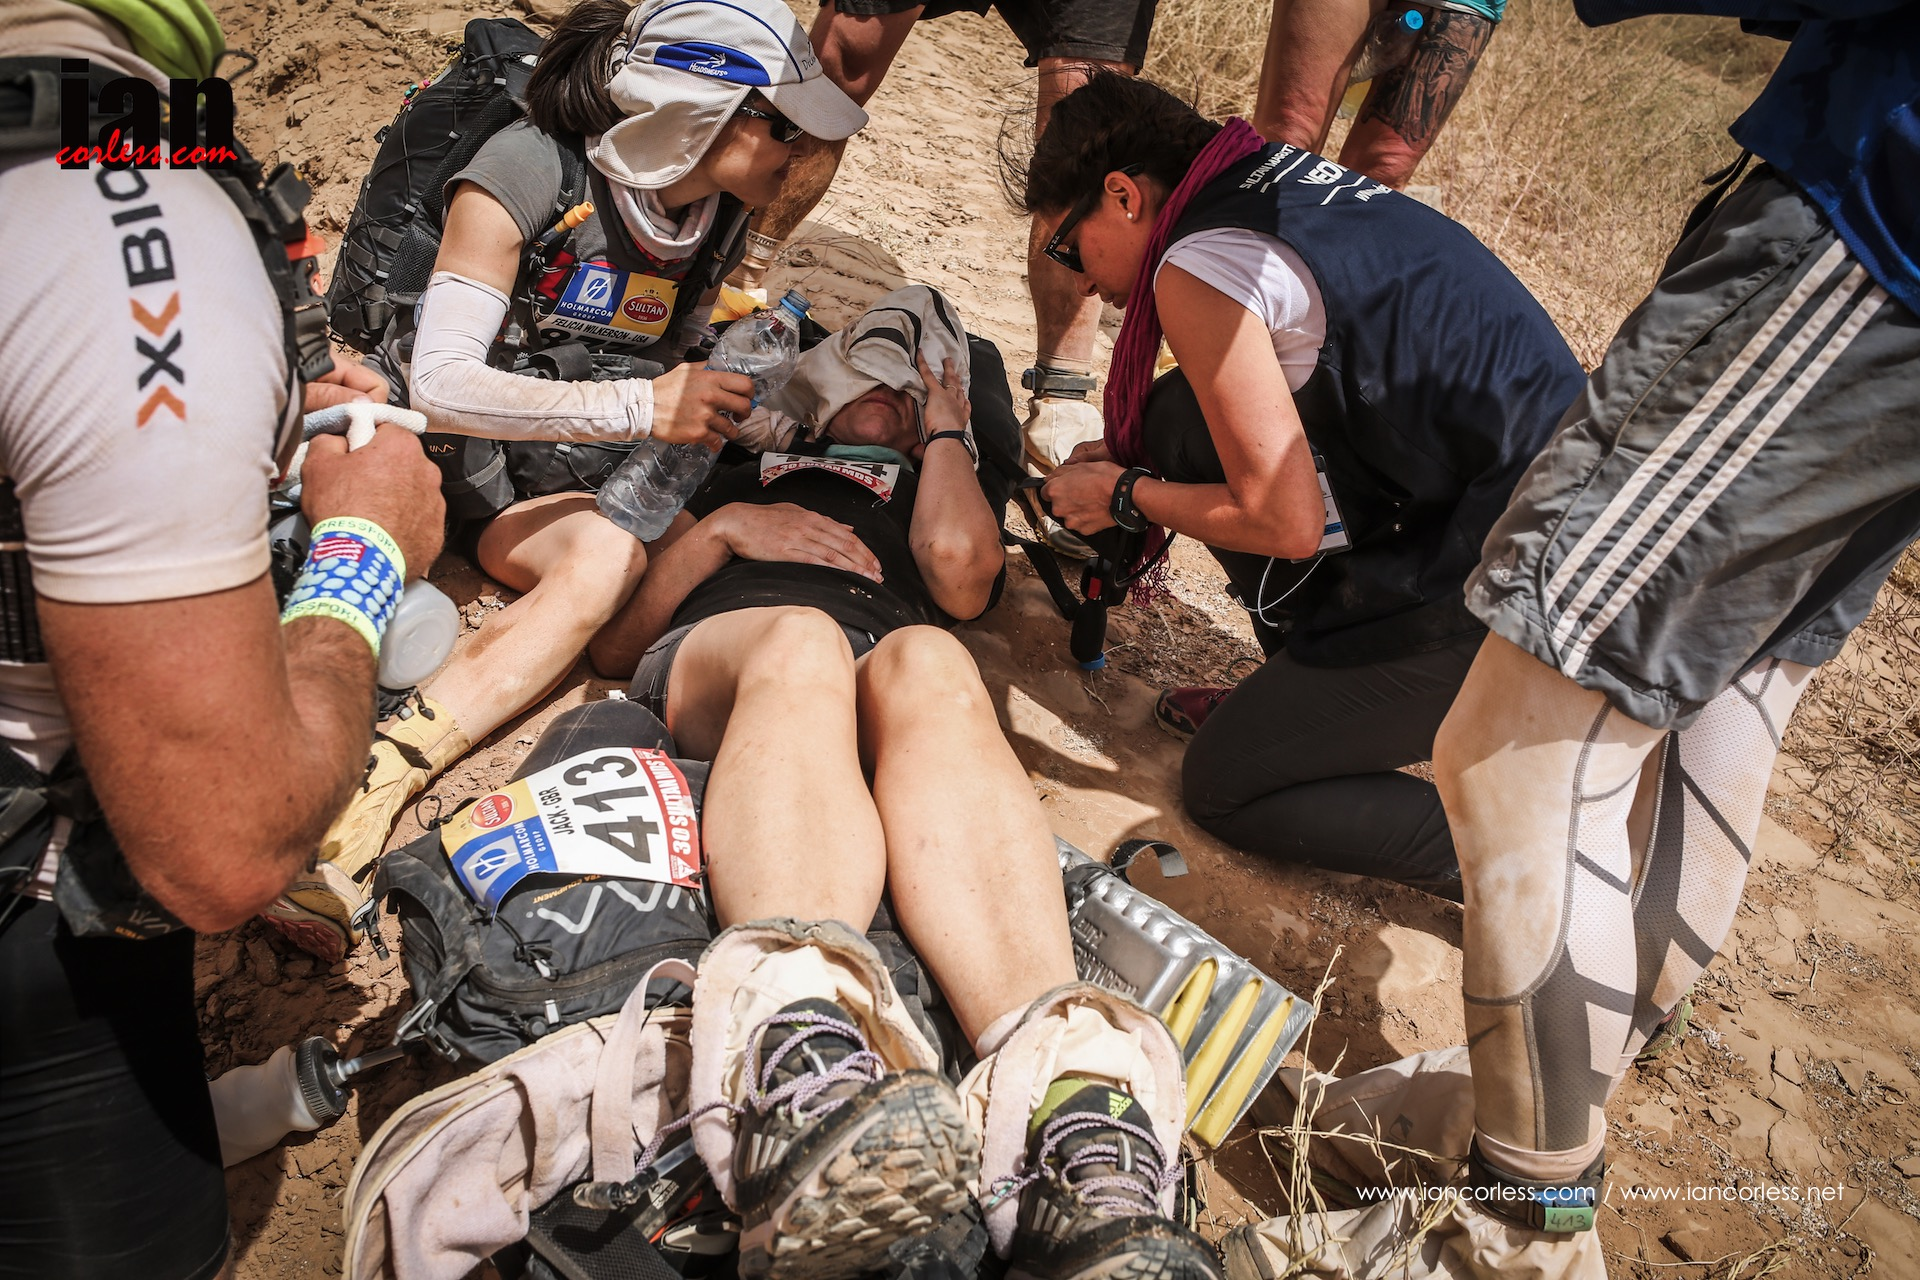 Marathon des Sables medical emergency